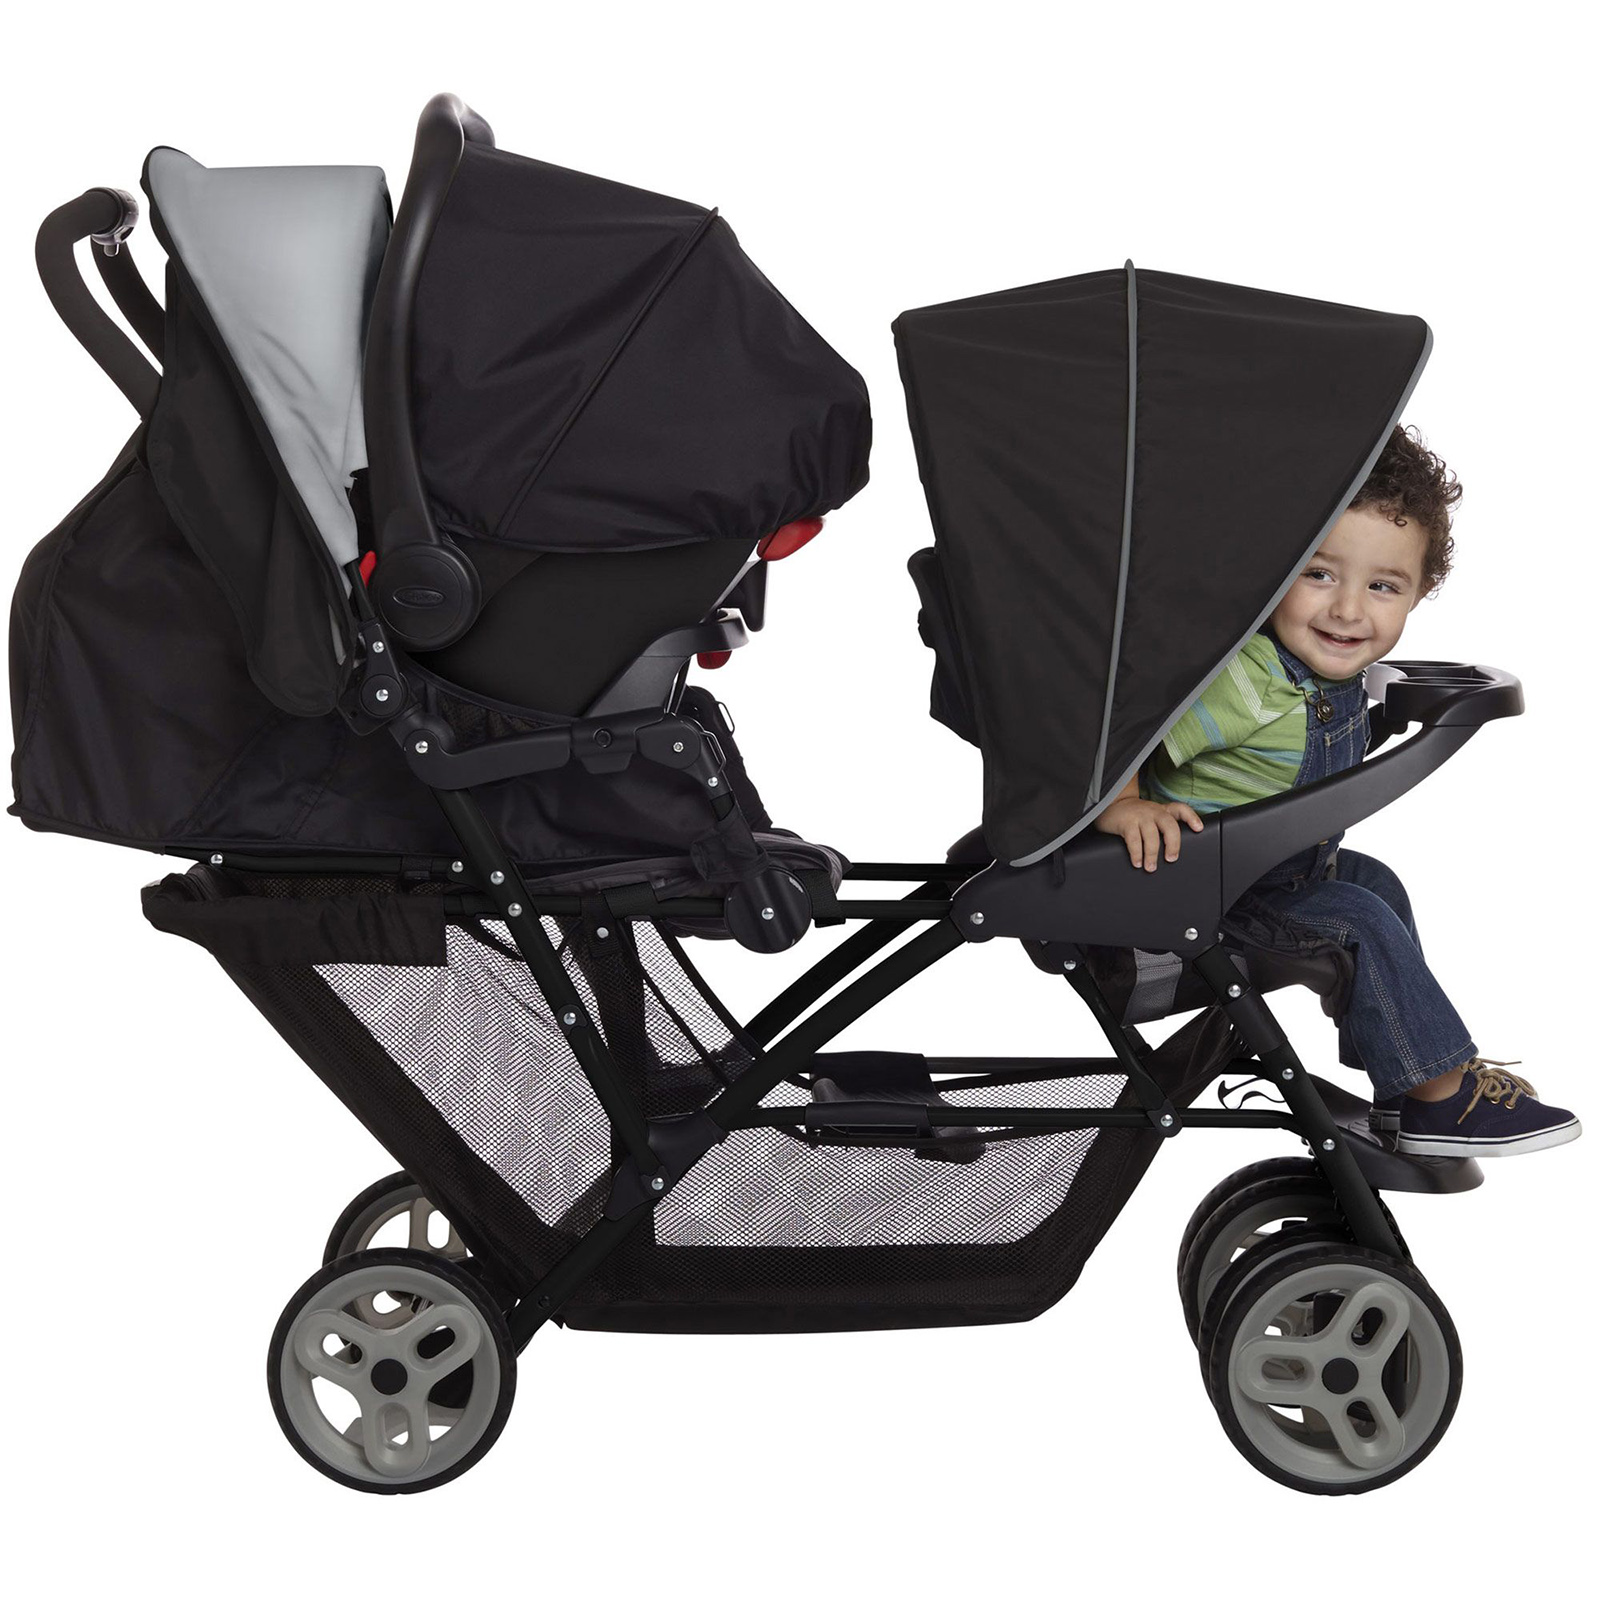 Graco Stadium Duo Double Pram Twin Travel System With 2 Snugride I Size Car Seat Bases Black Grey